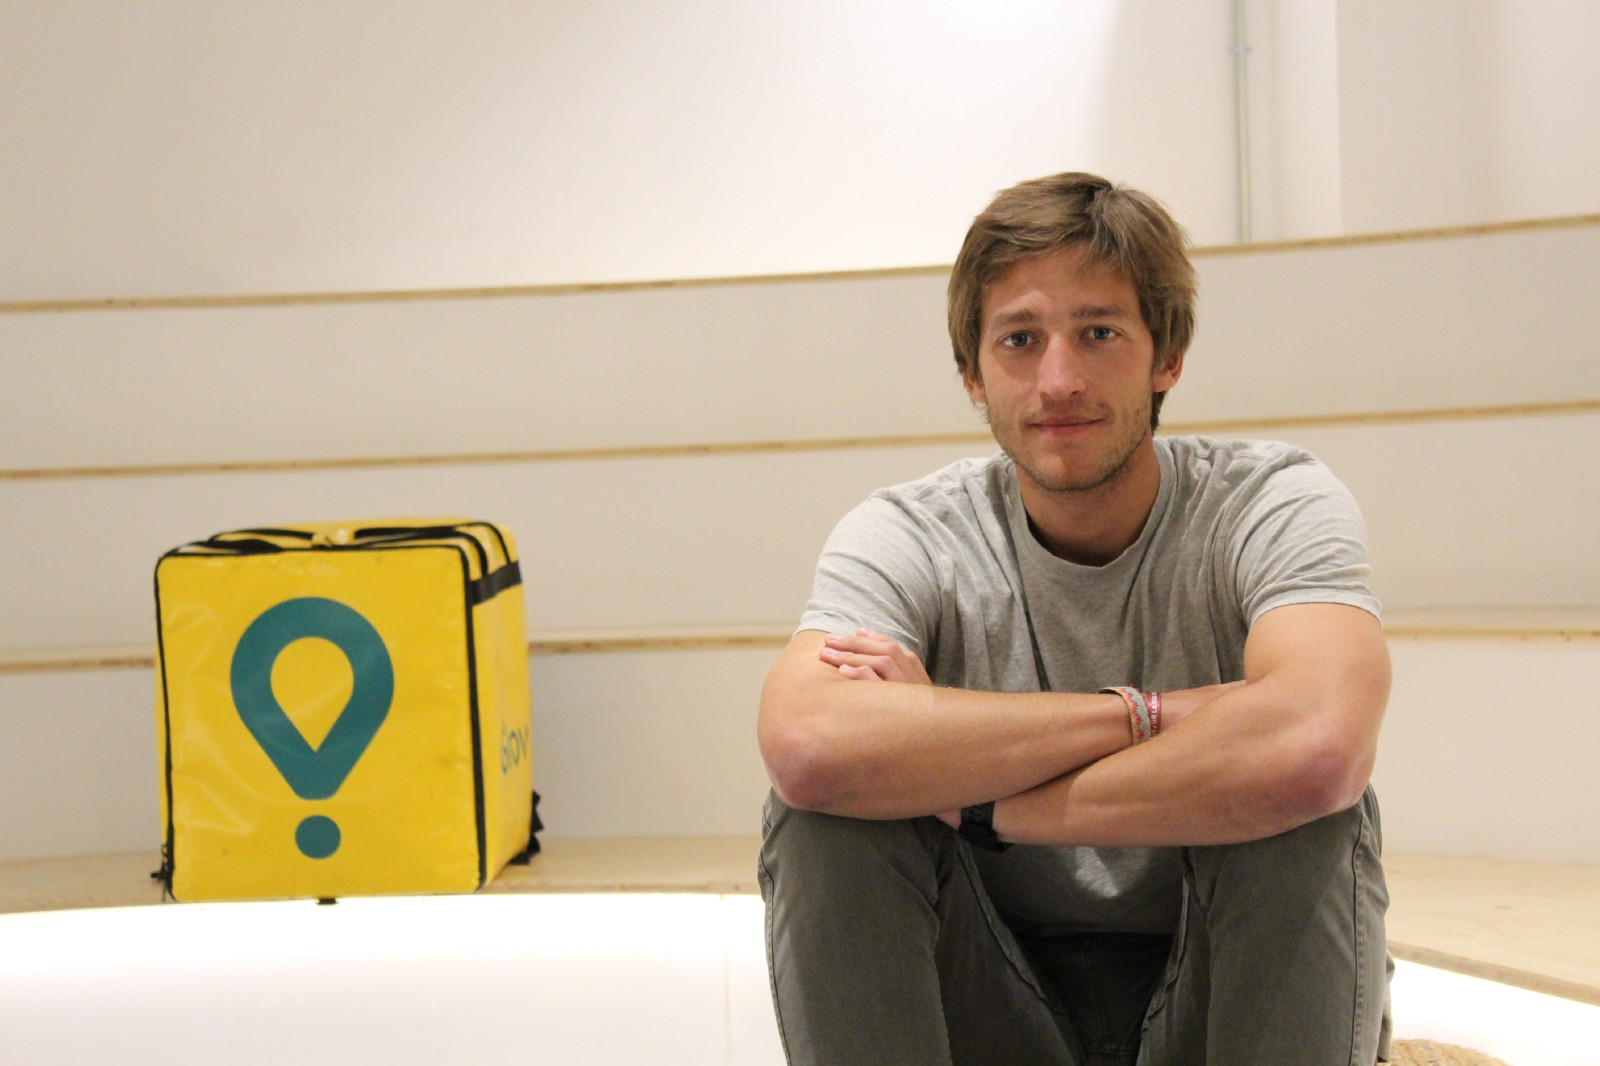 Glovo founder Oscar Pierre sitting on a set of stairs next to a Glovo delivery bag.